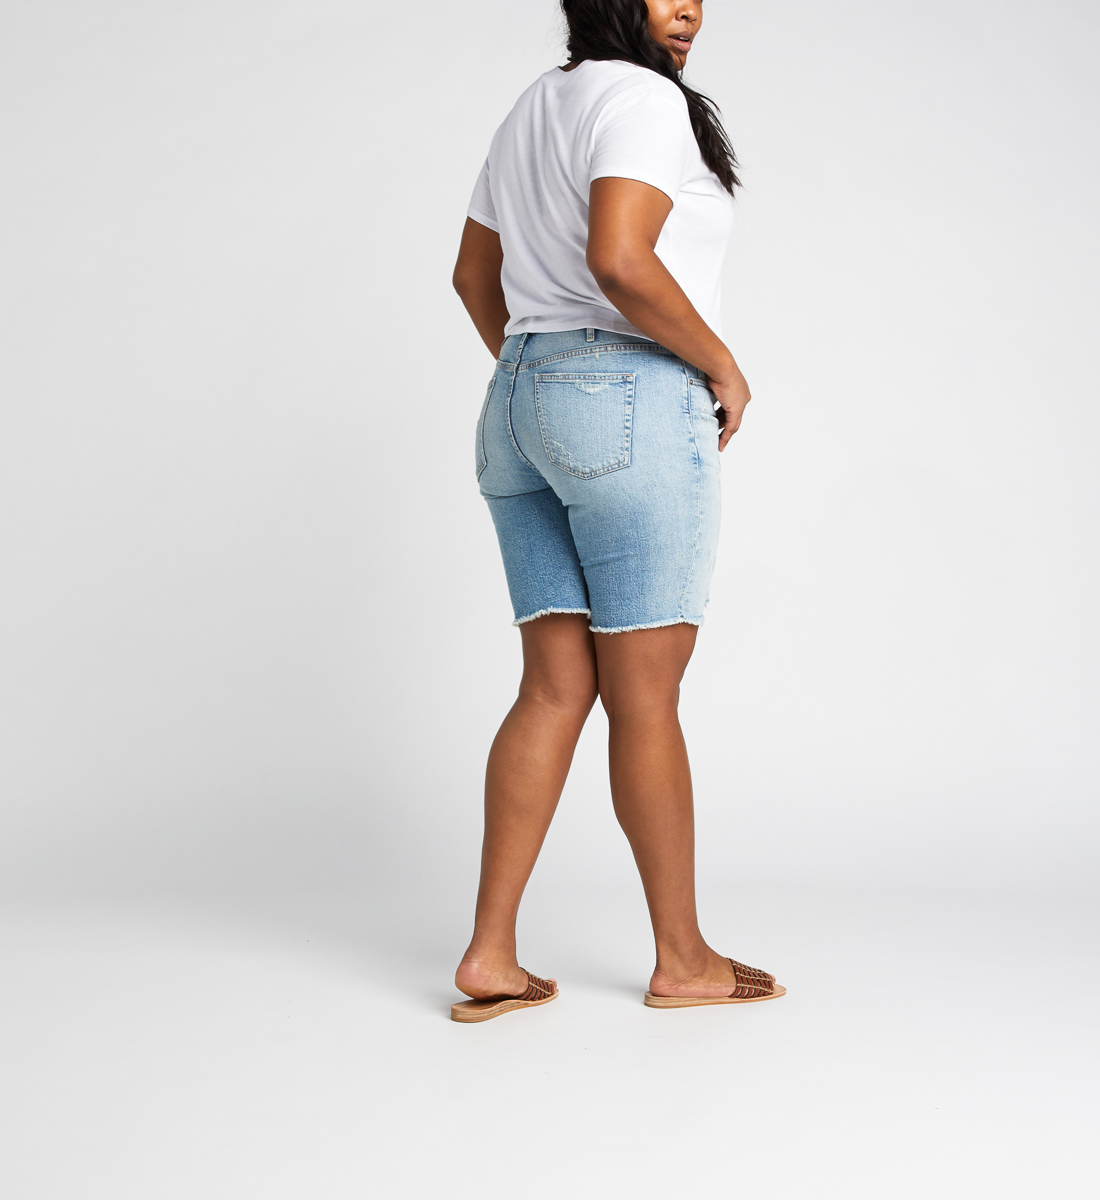 Frisco High Rise Knee Short Plus Size Back